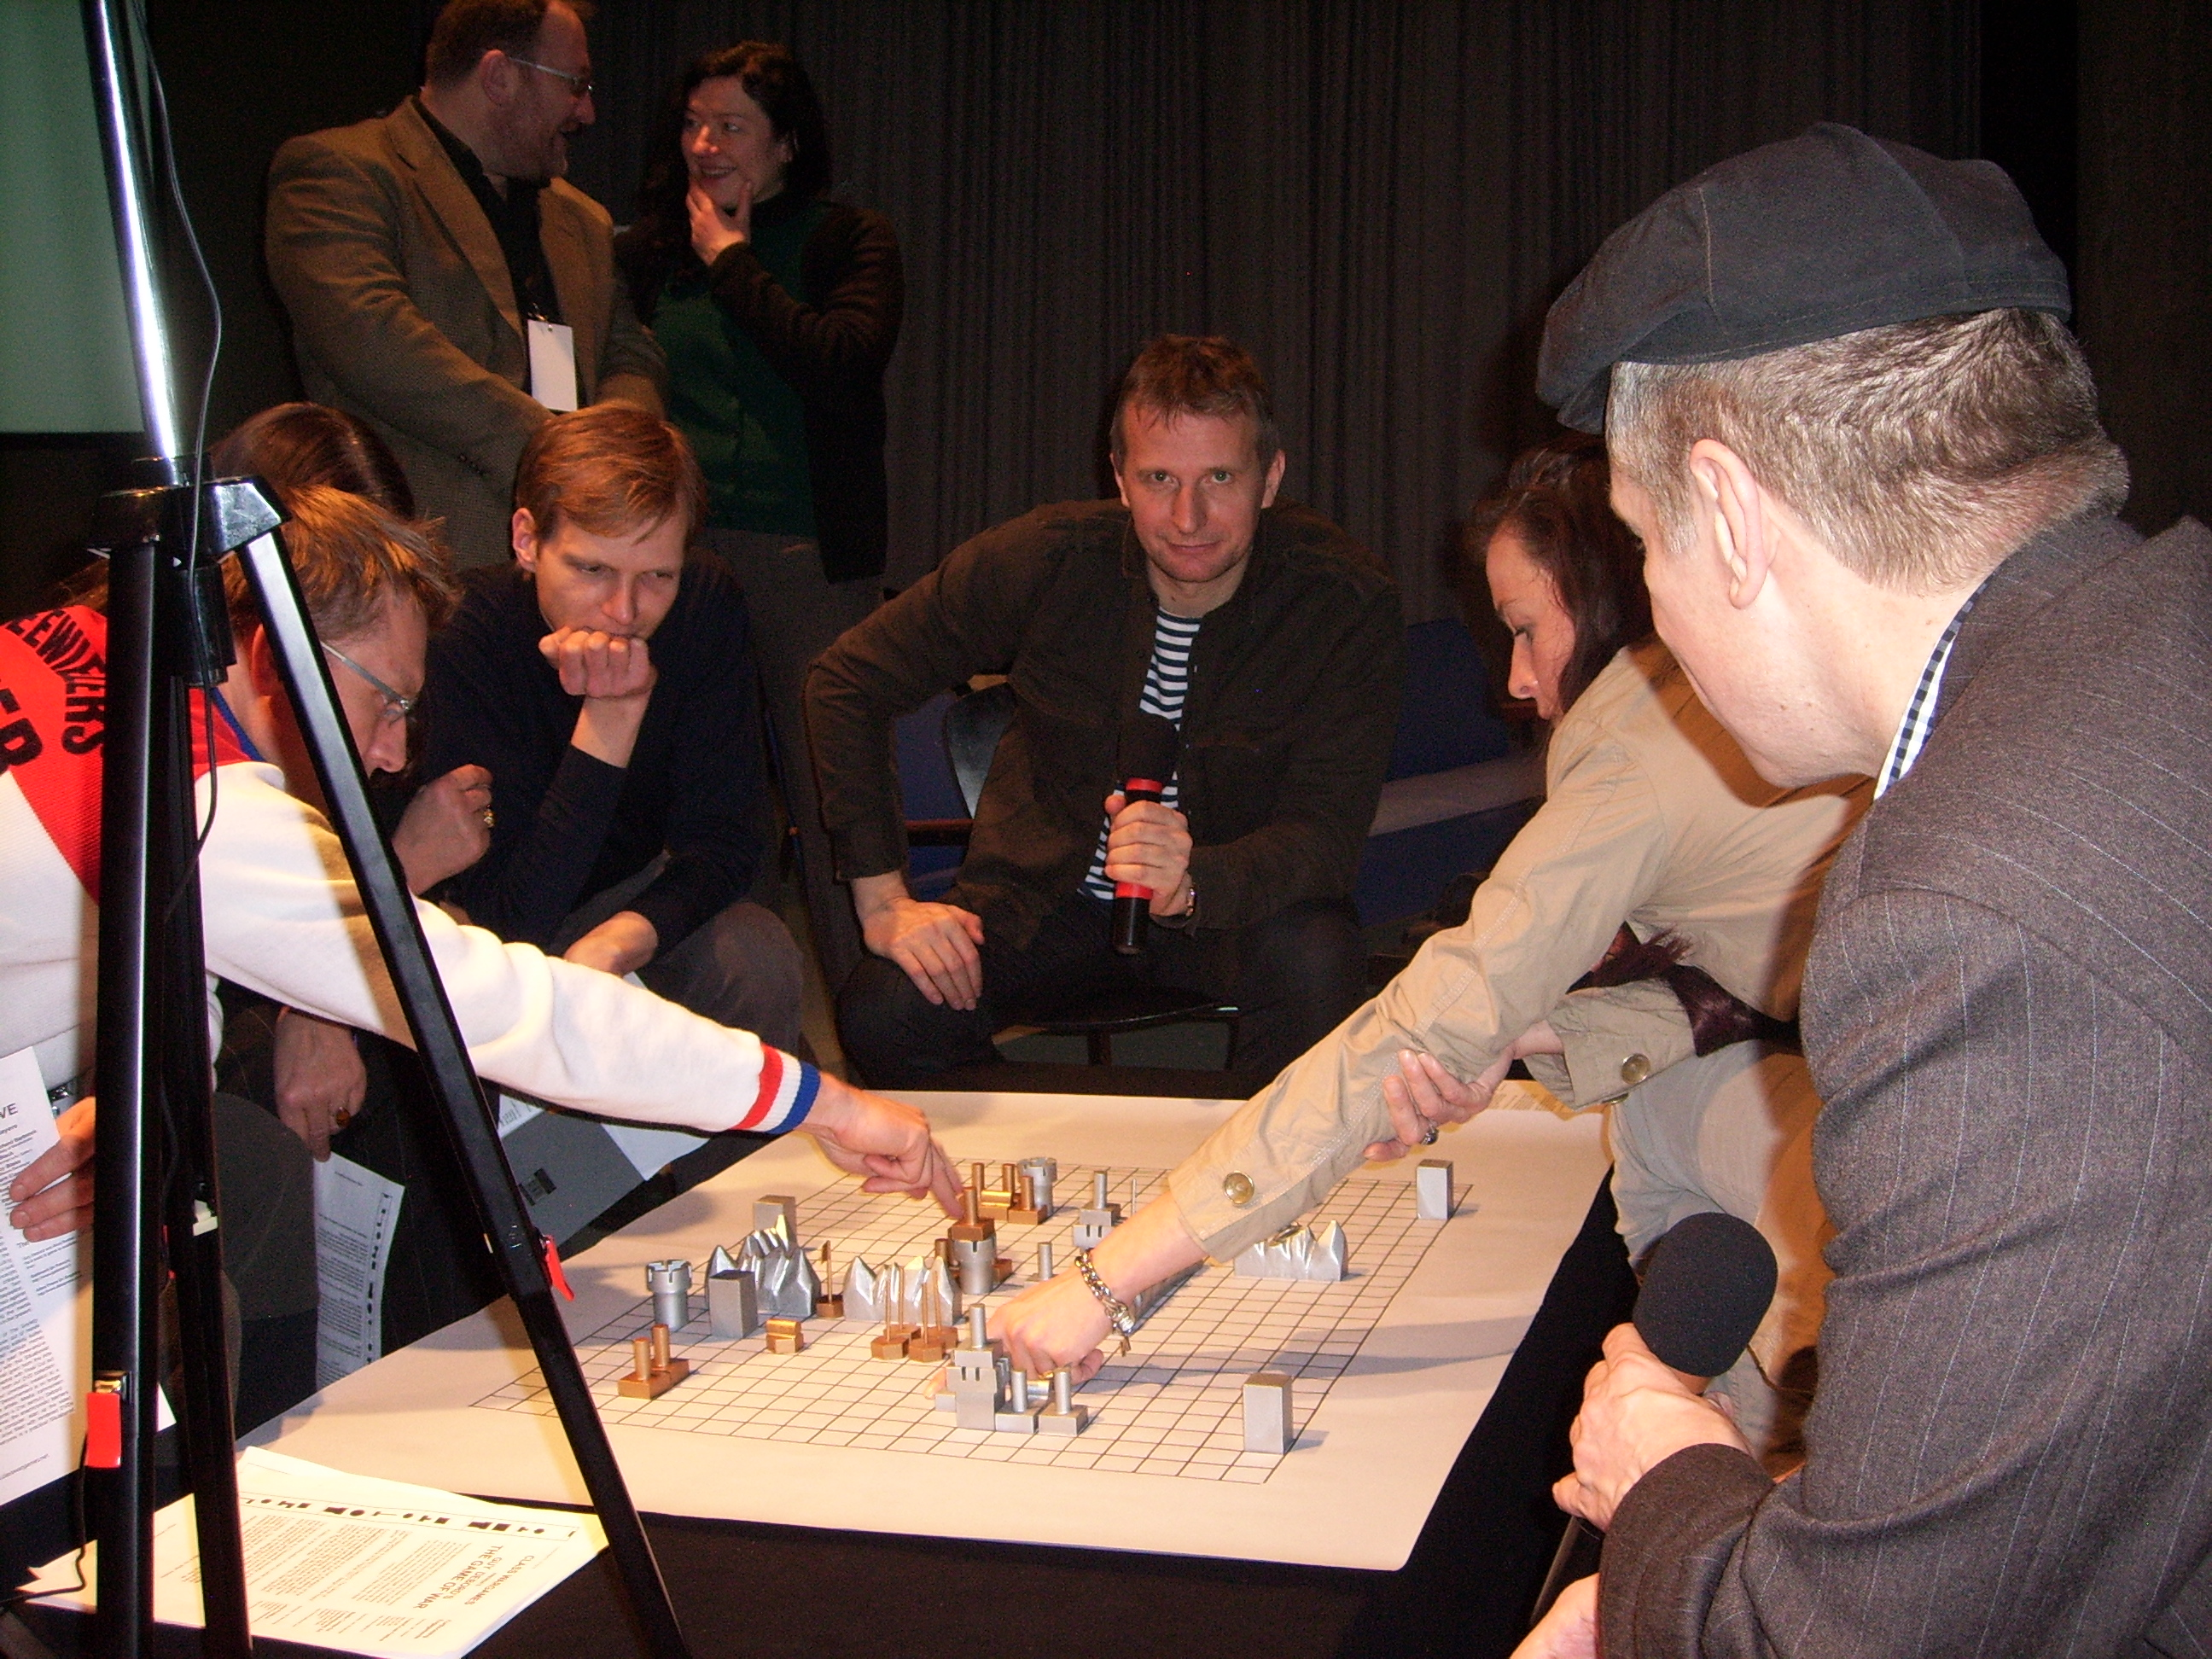 game_players_4